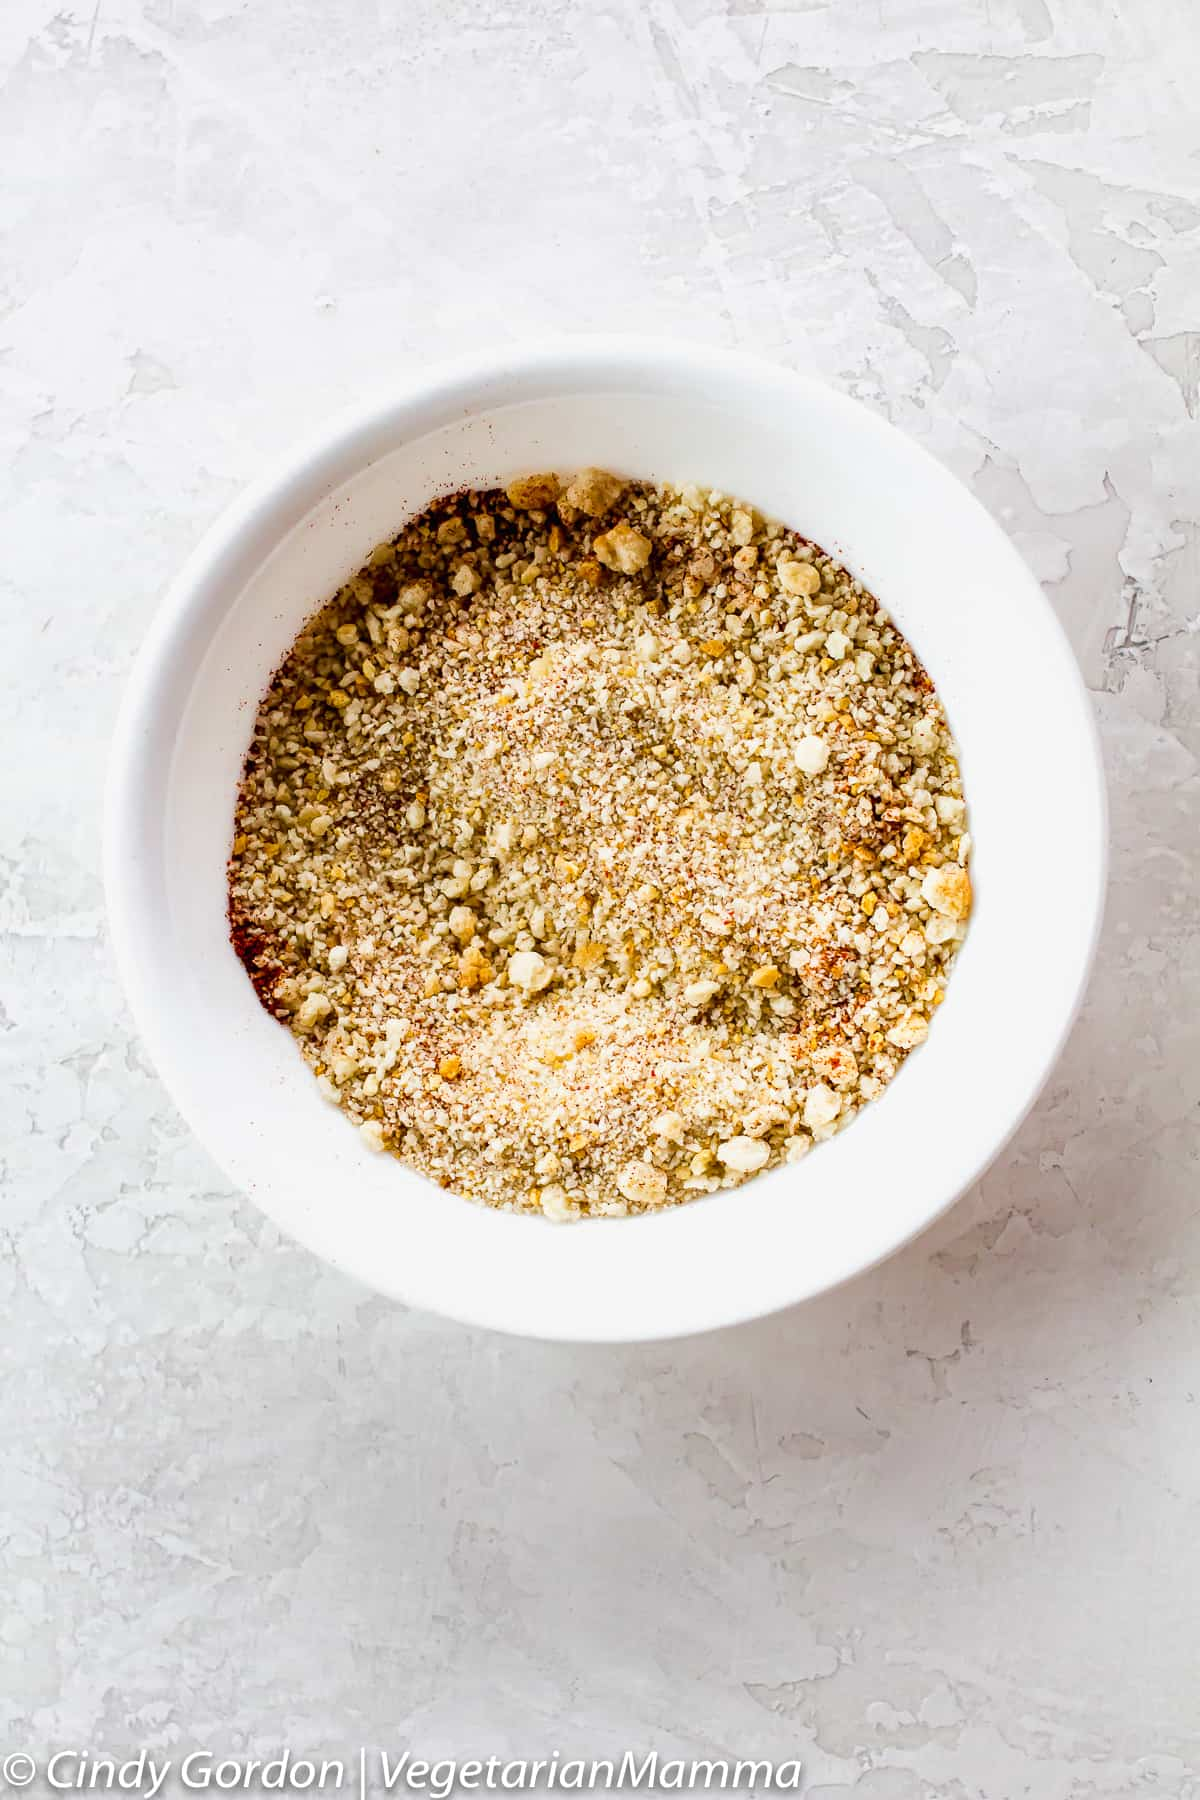 A bowl of gluten-free crumbs